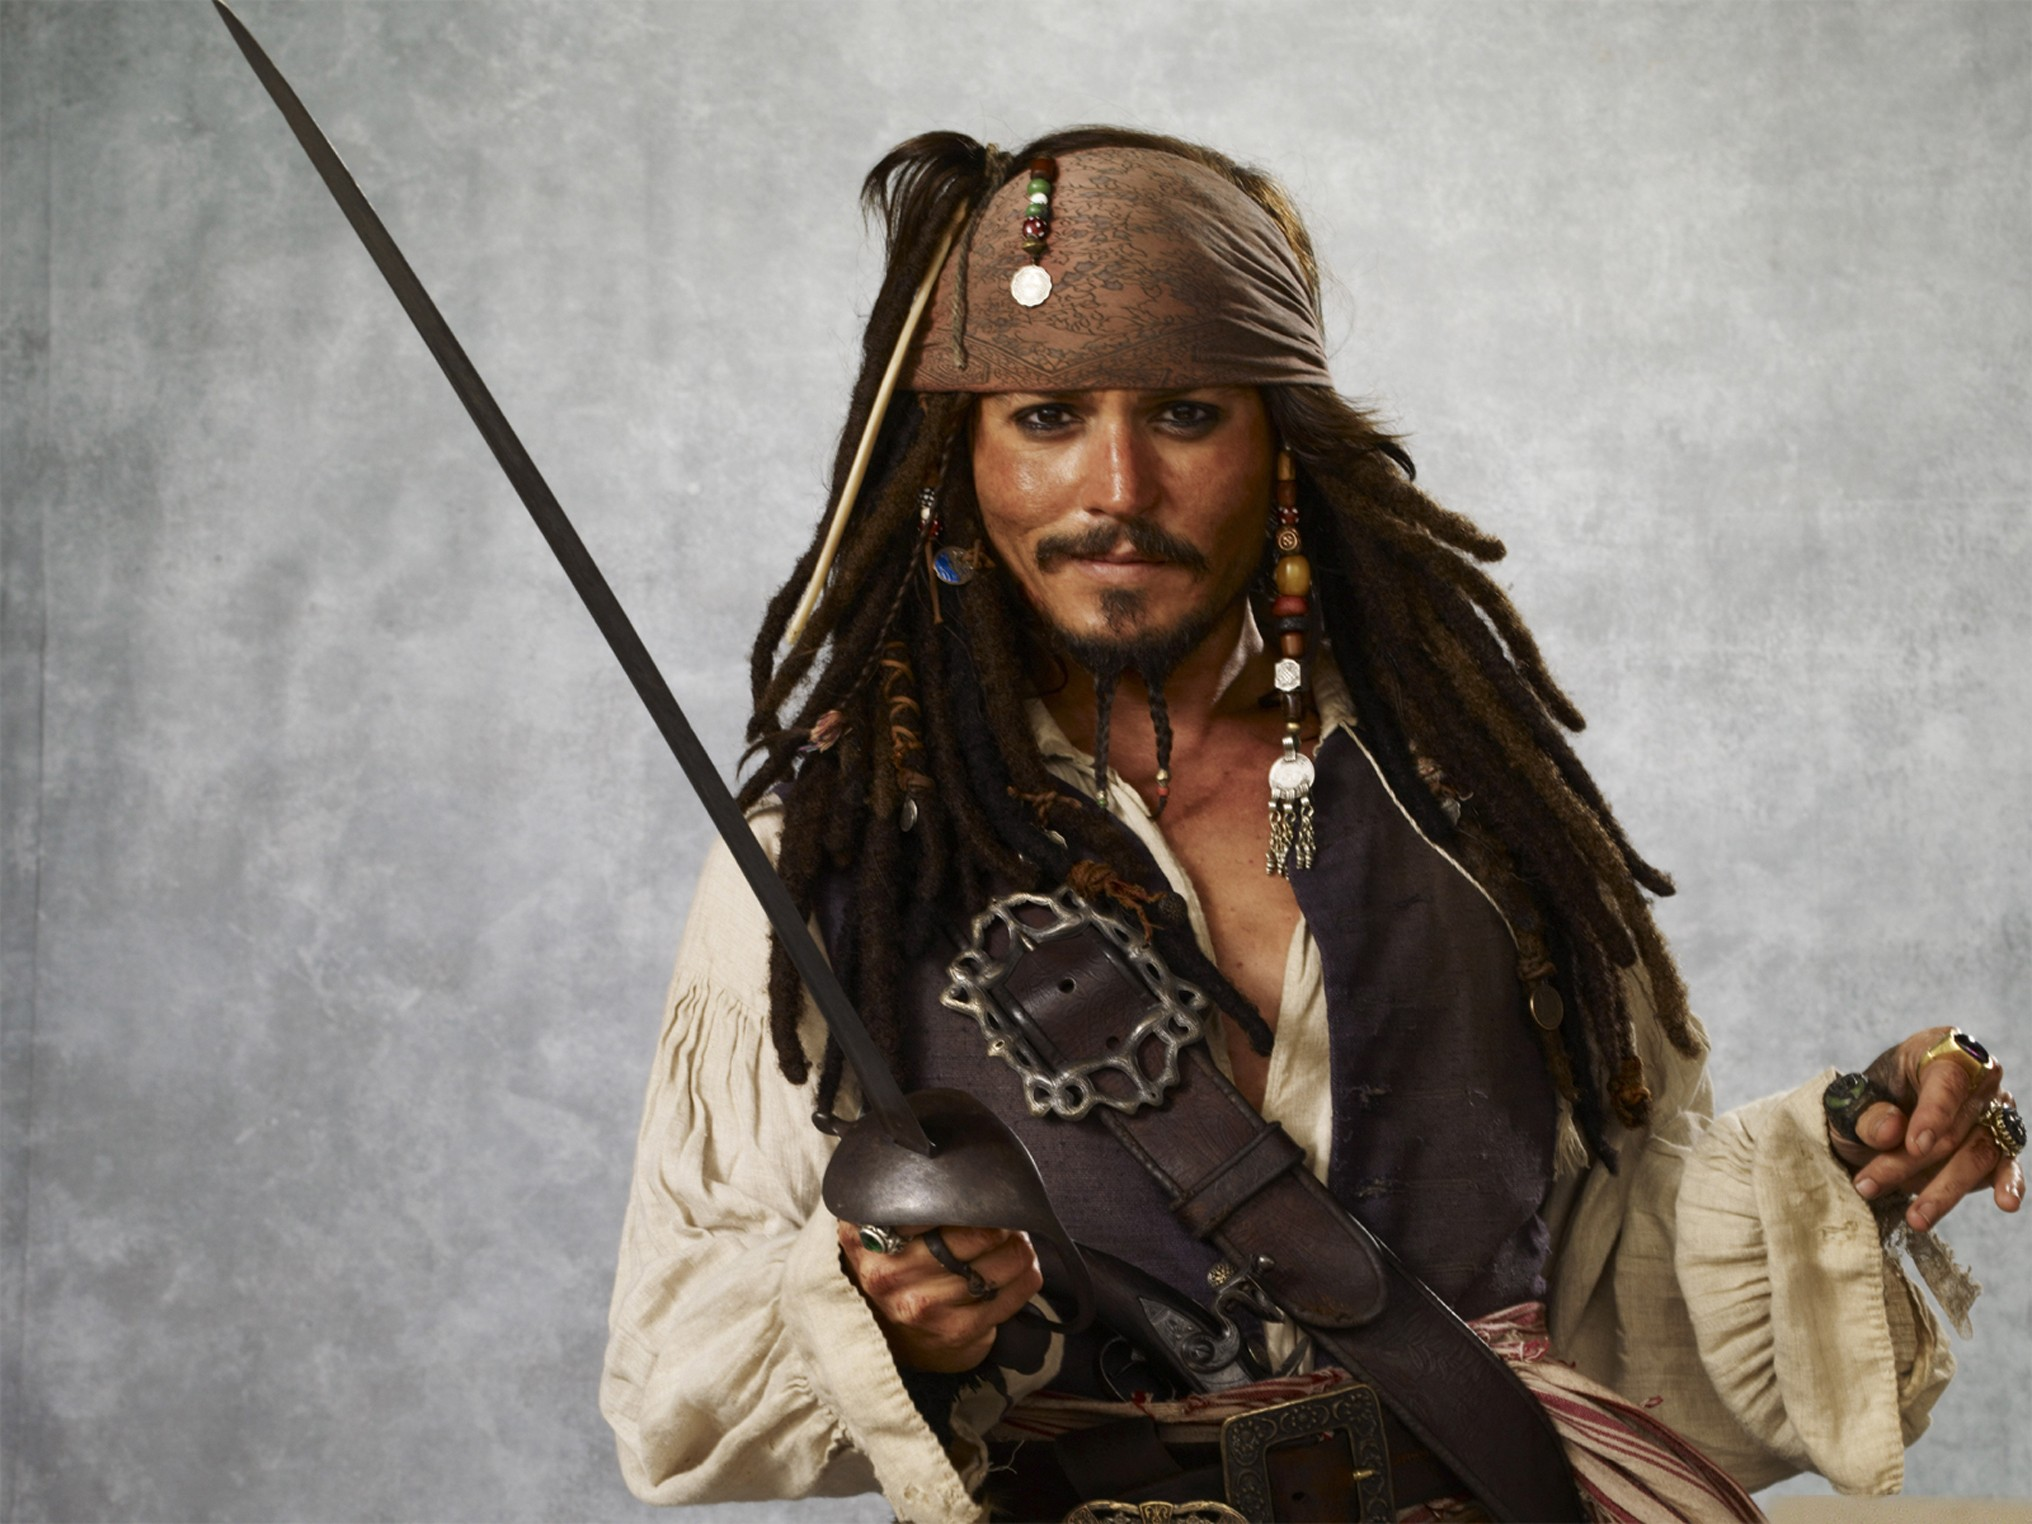 Pirates of the carrbiannudesexwallpaperphotopictures adult pics